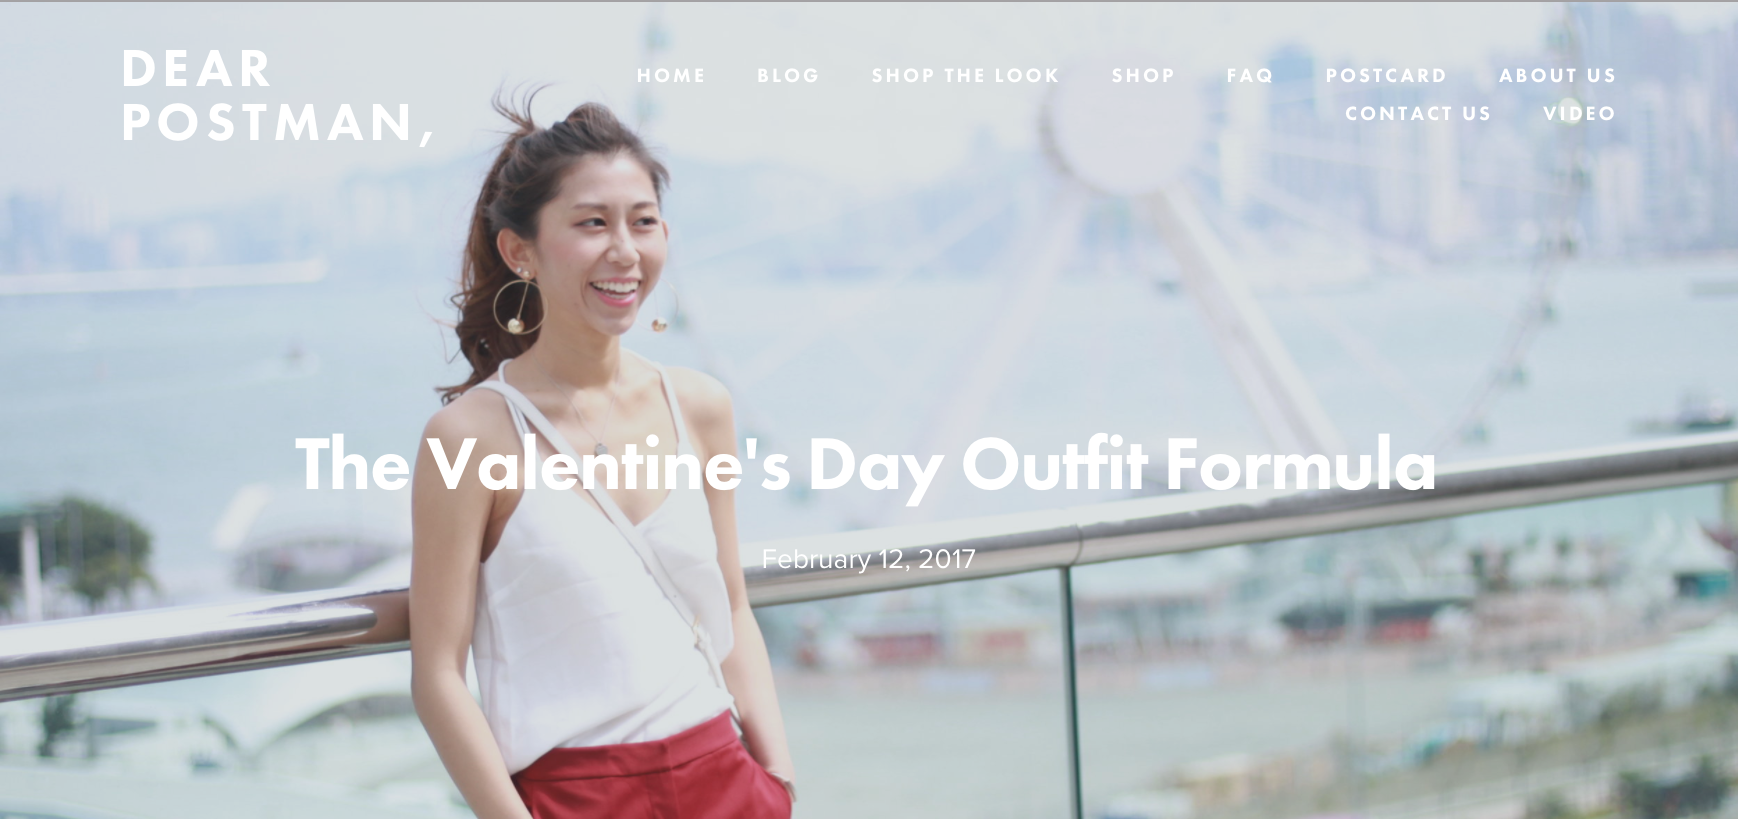 The Valentine's Day Outfit Formula